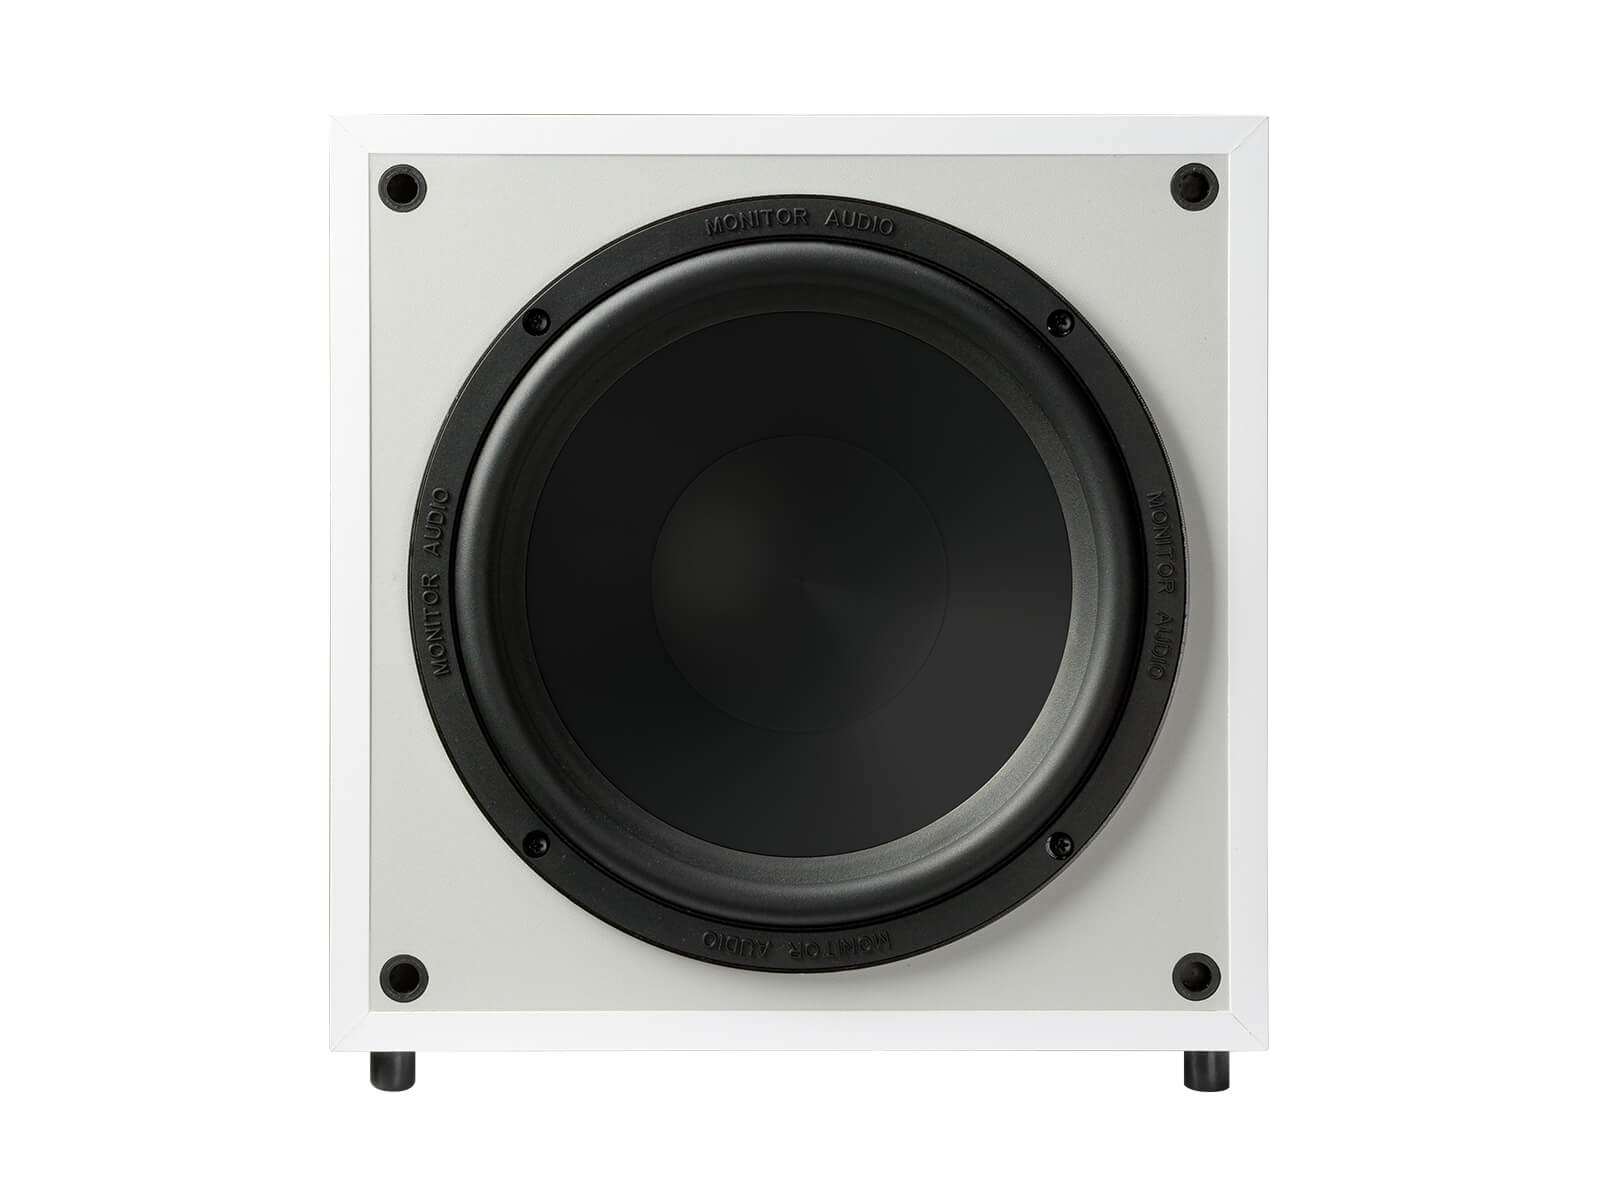 Monitor MRW-10, grille-less subwoofer, front on a white finish.